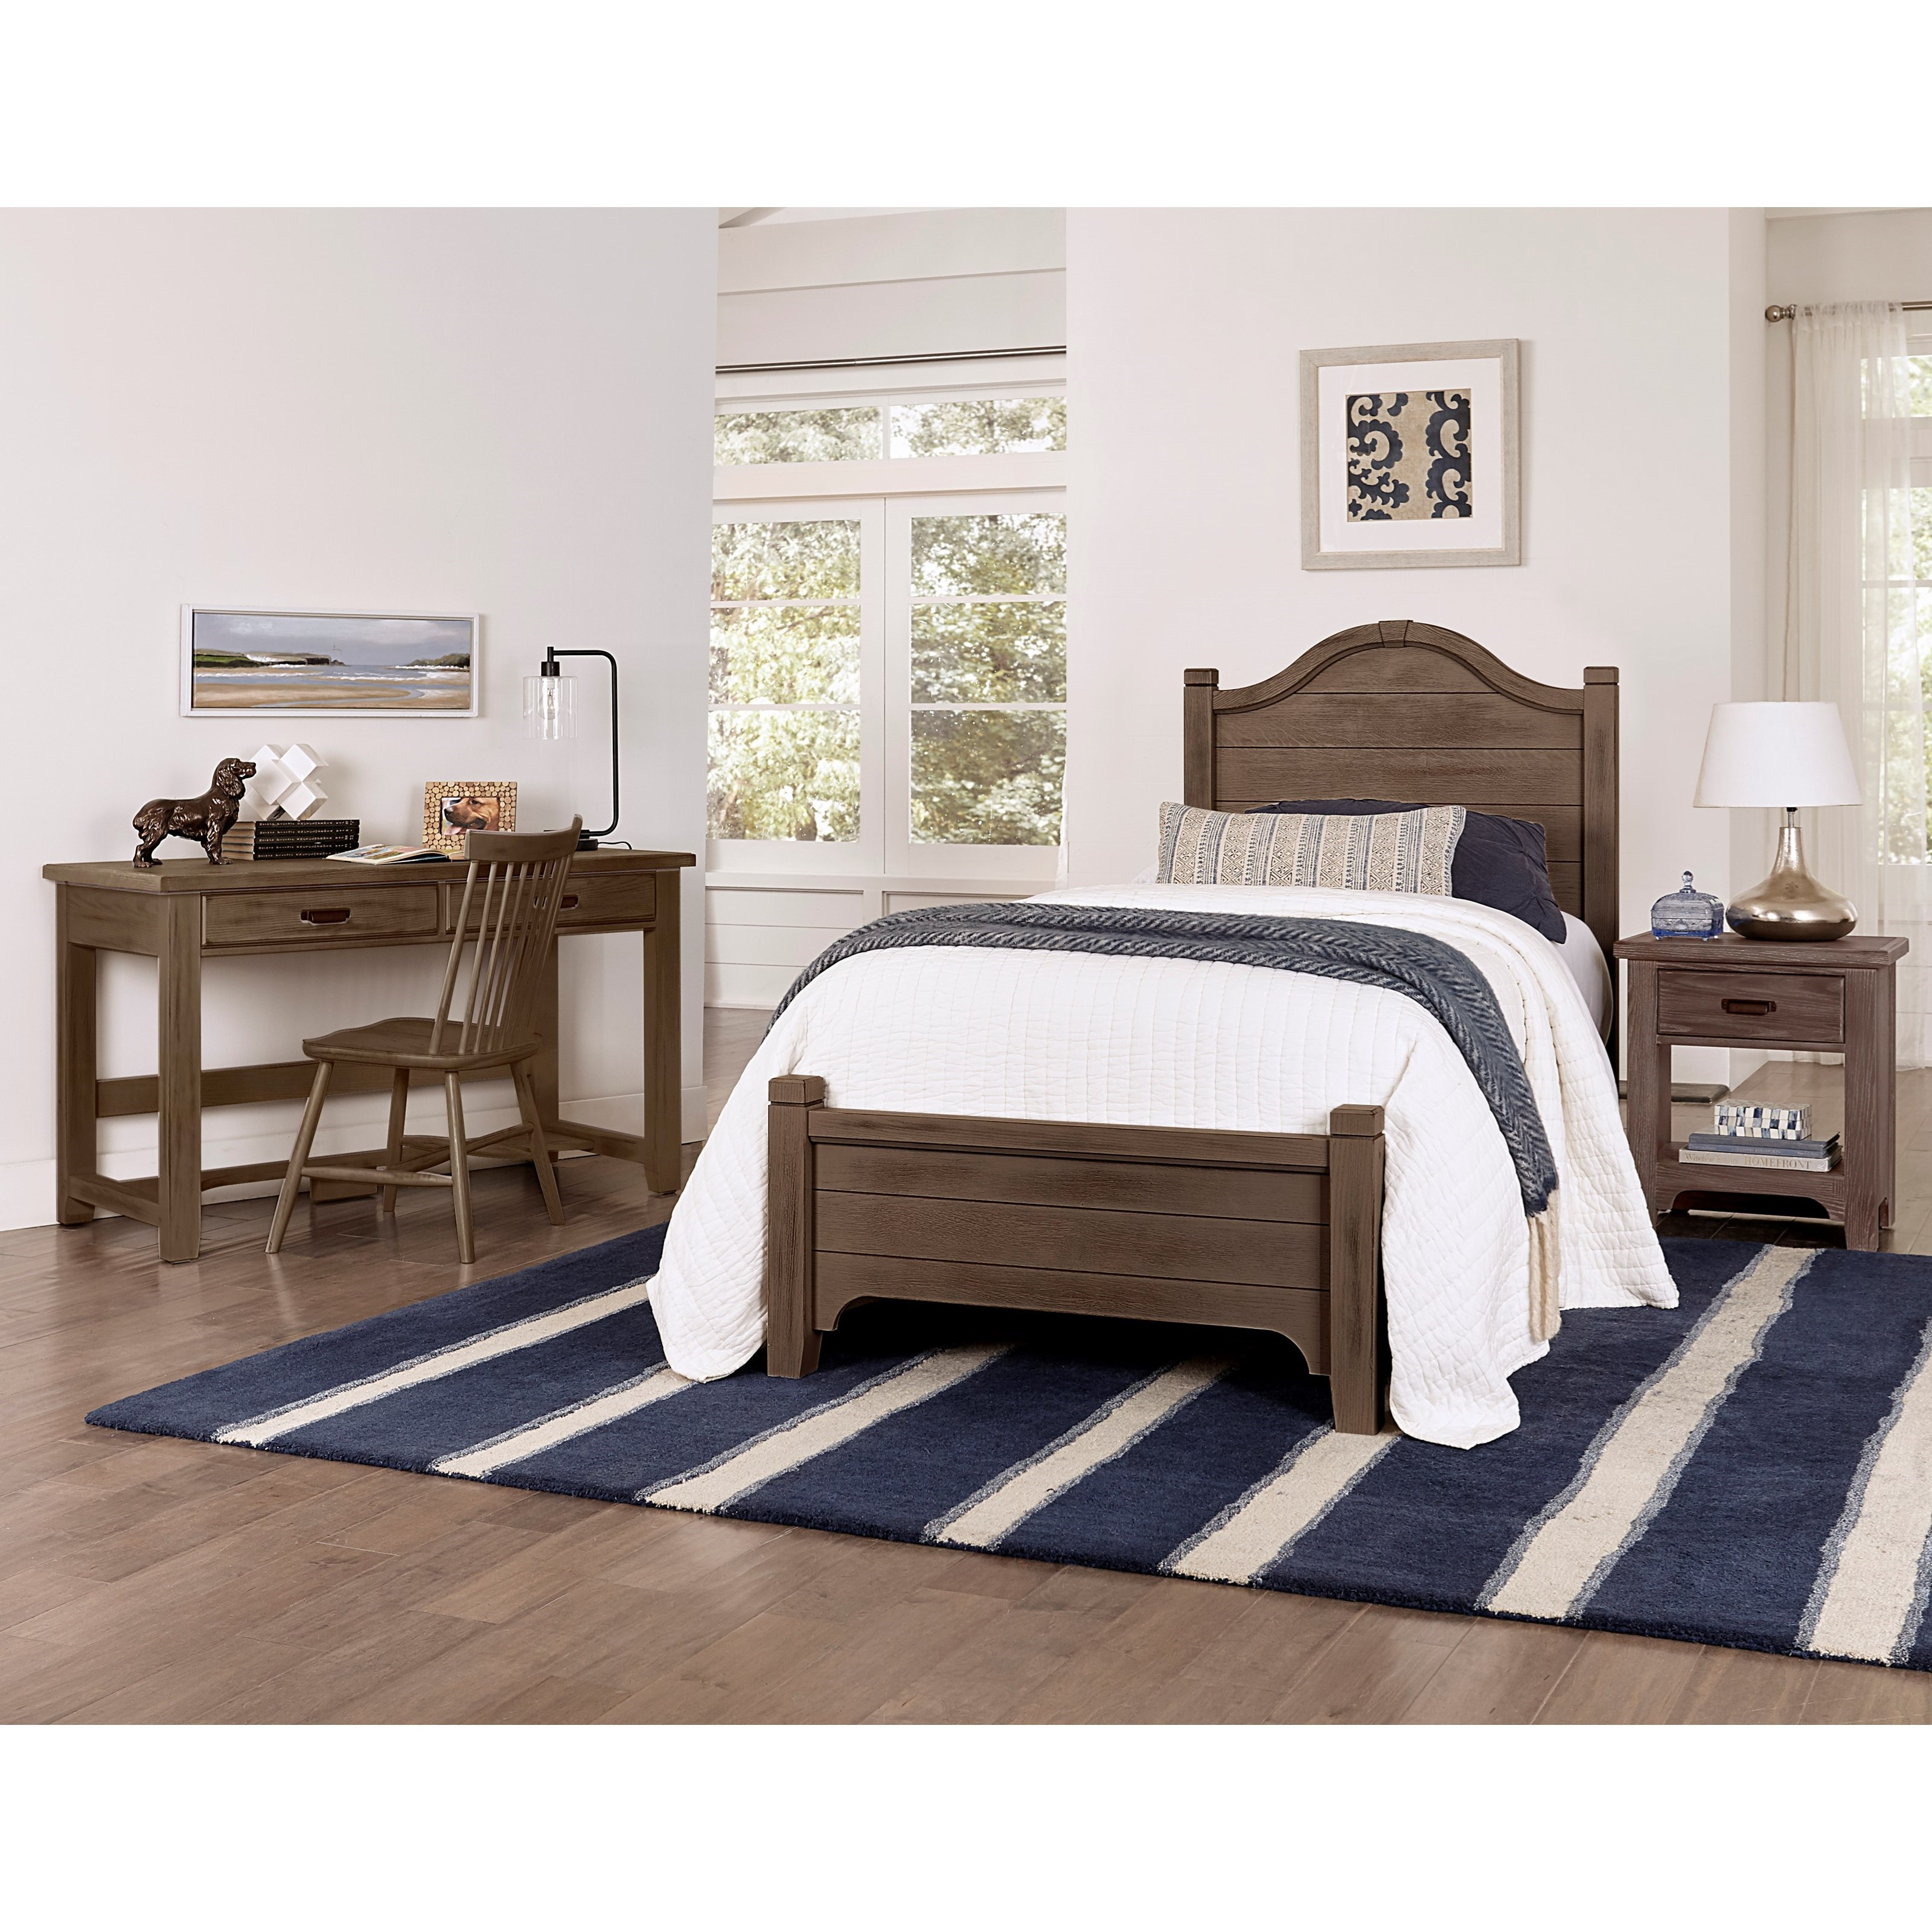 Bungalow Full Bedroom Group by Laurel Mercantile Co. at Powell's Furniture and Mattress